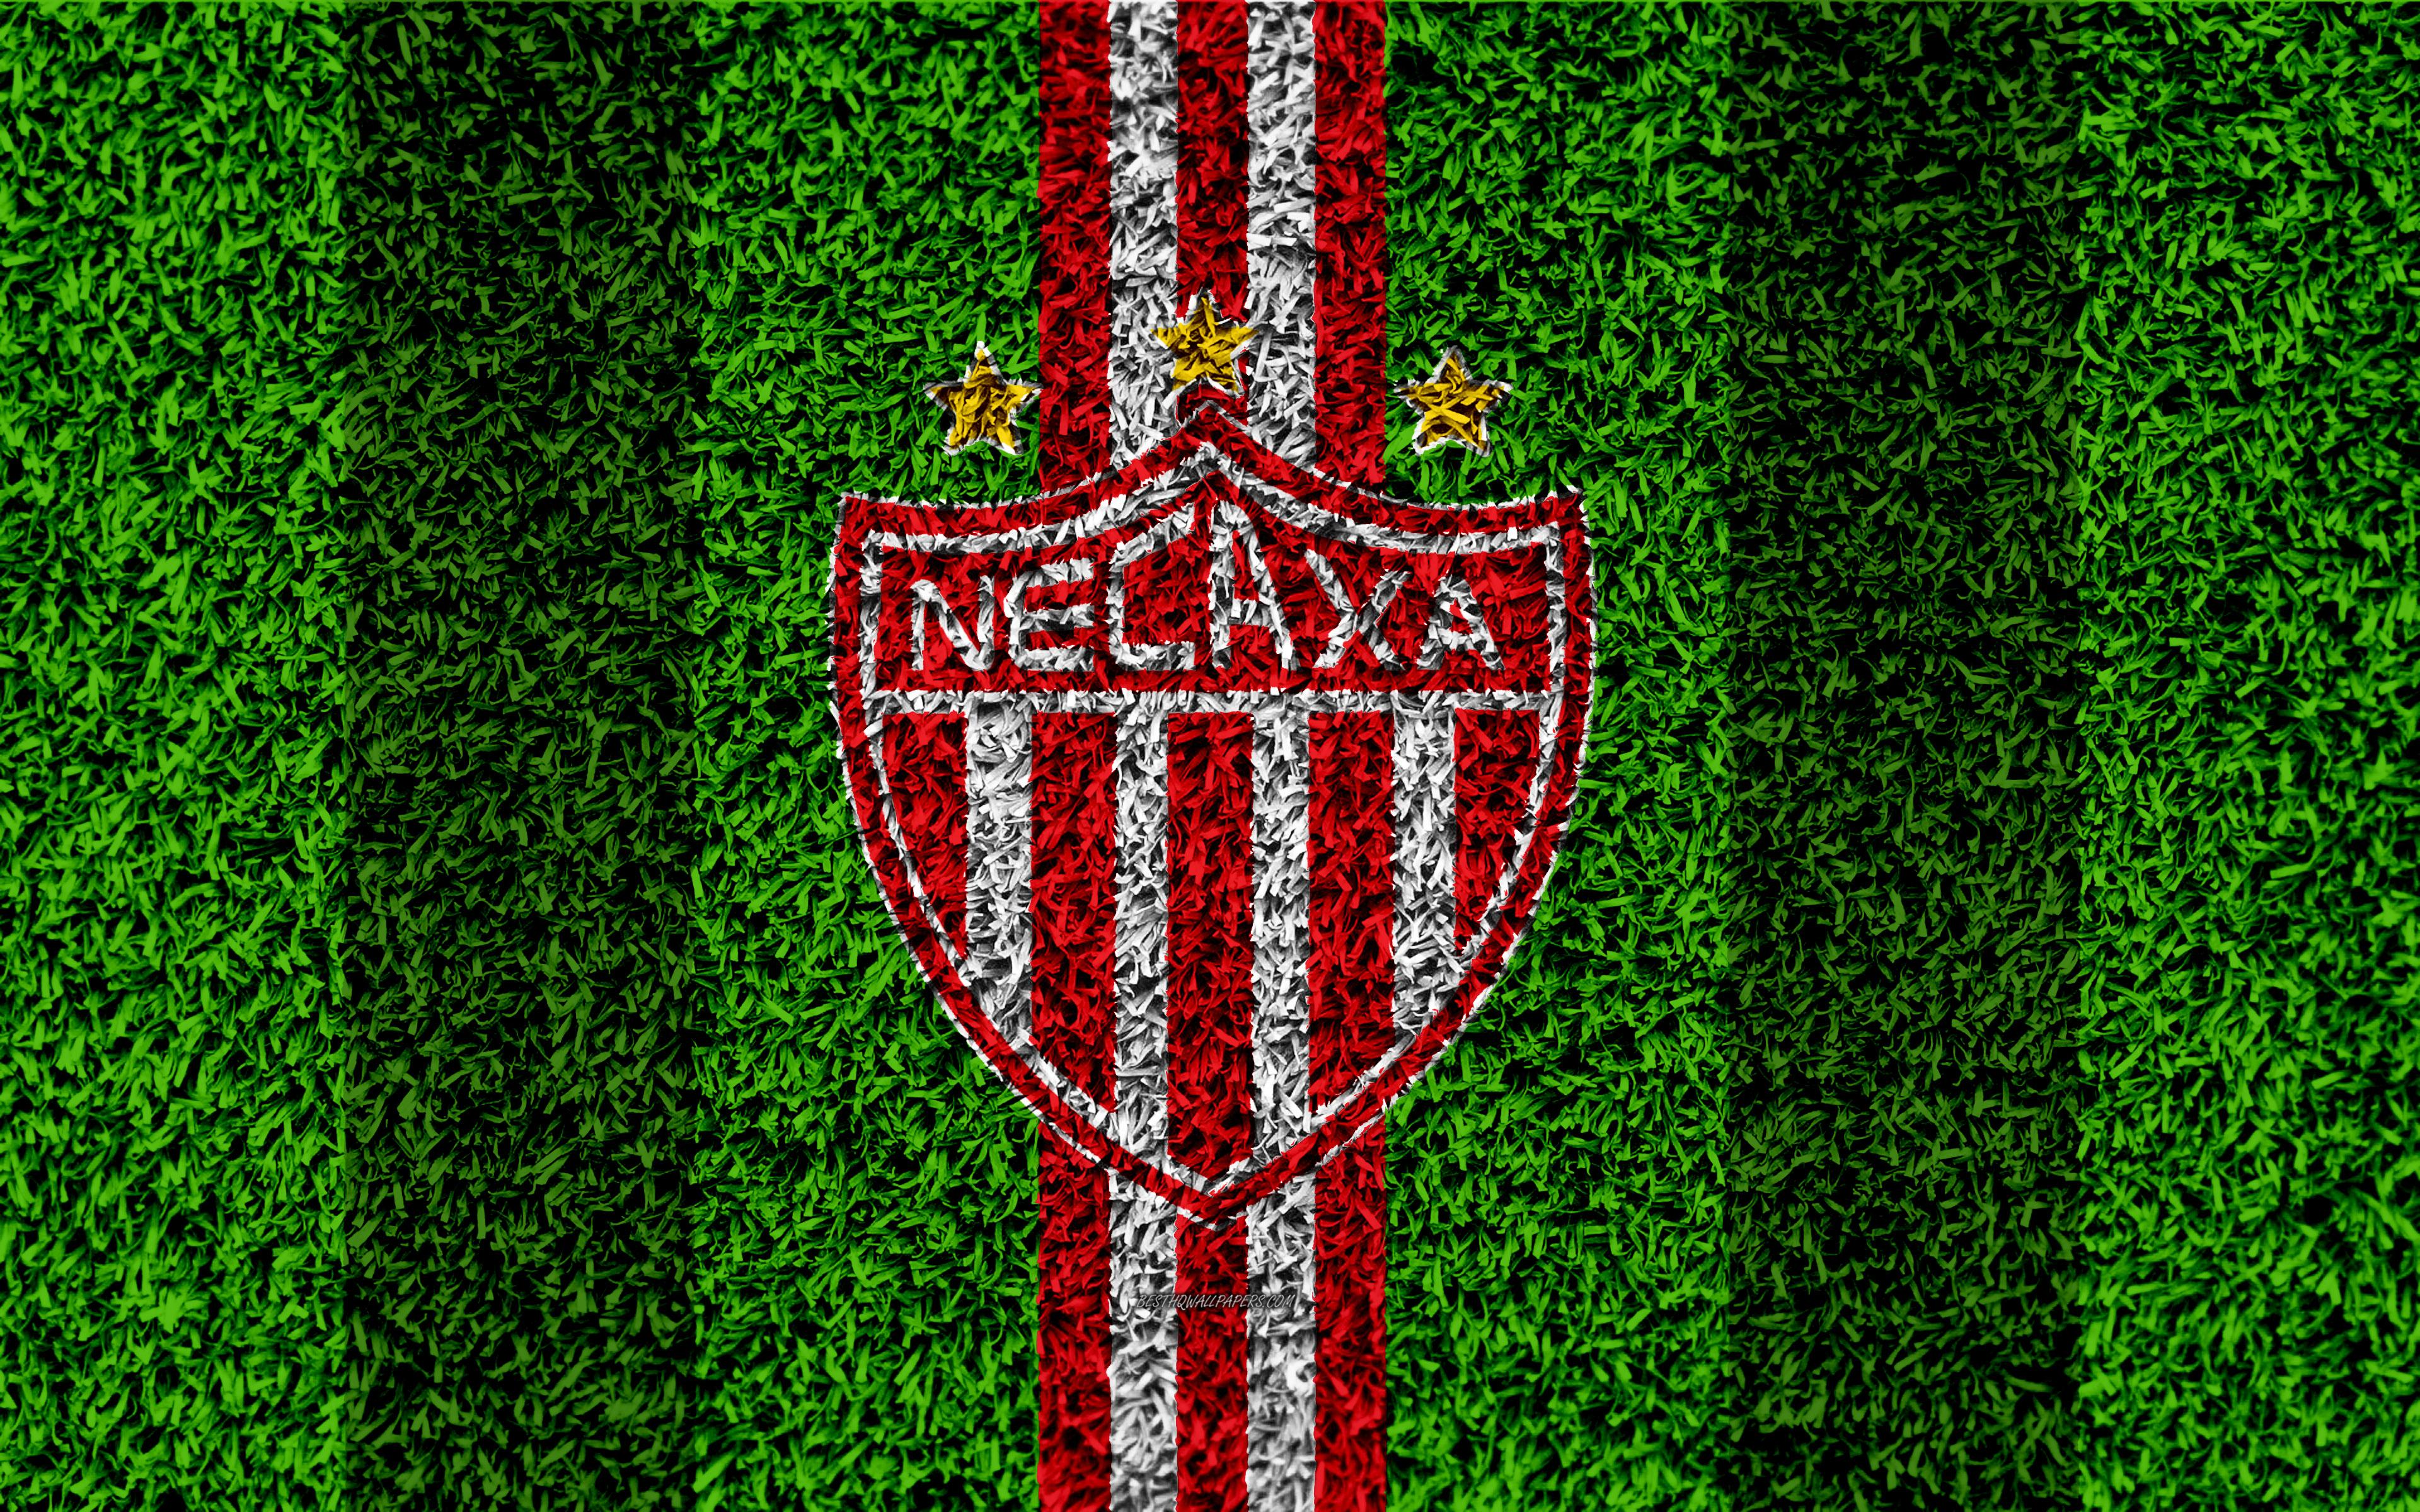 Download wallpapers Club Necaxa, 4k, football lawn, logo, Mexican